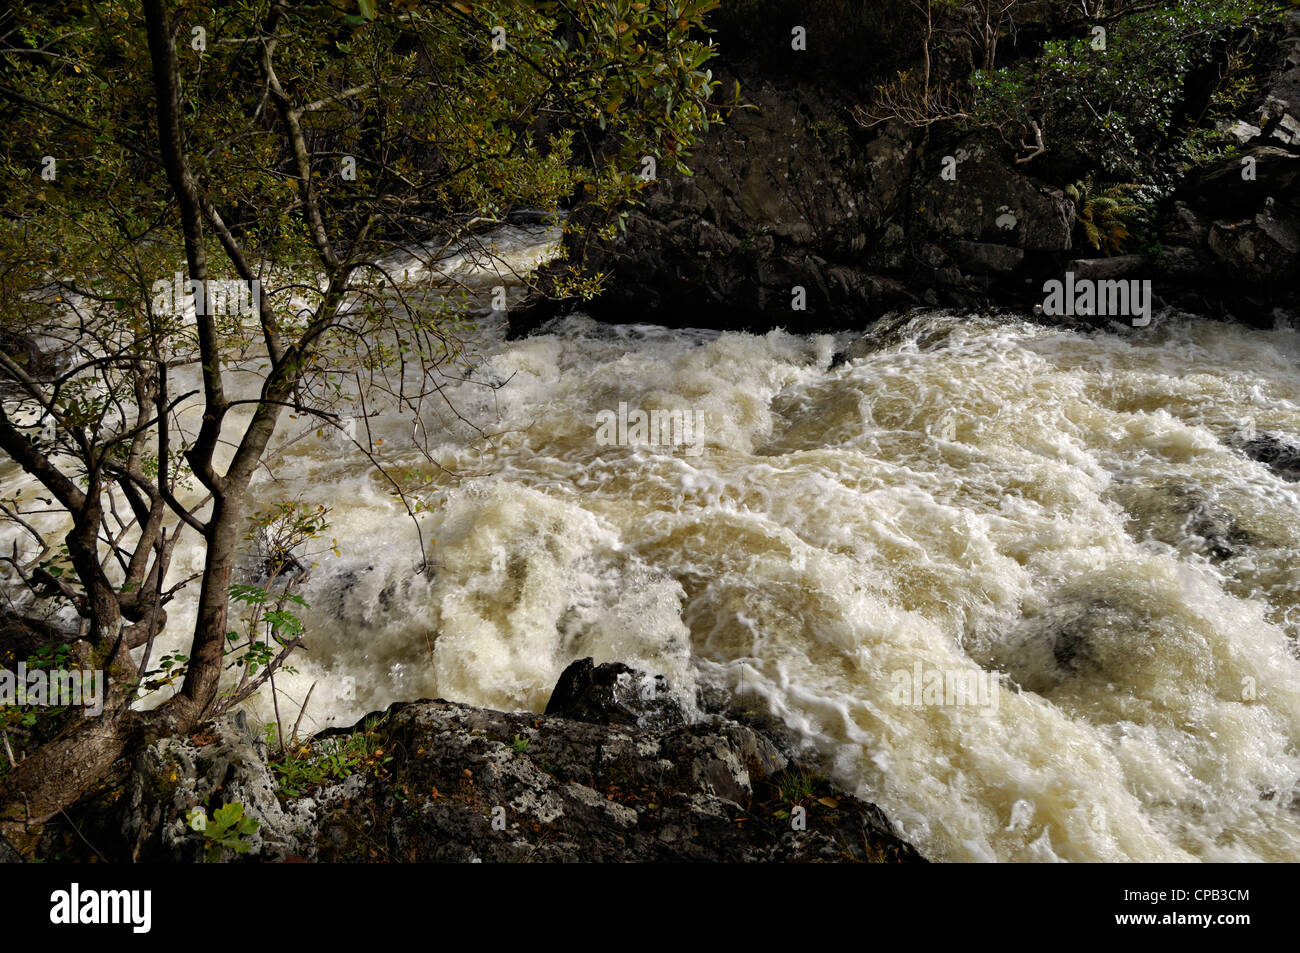 A torrent of white water rushes down the narrow Falls of Leny near Callander, after heavy rainfall. Scotland, UK. - Stock Image